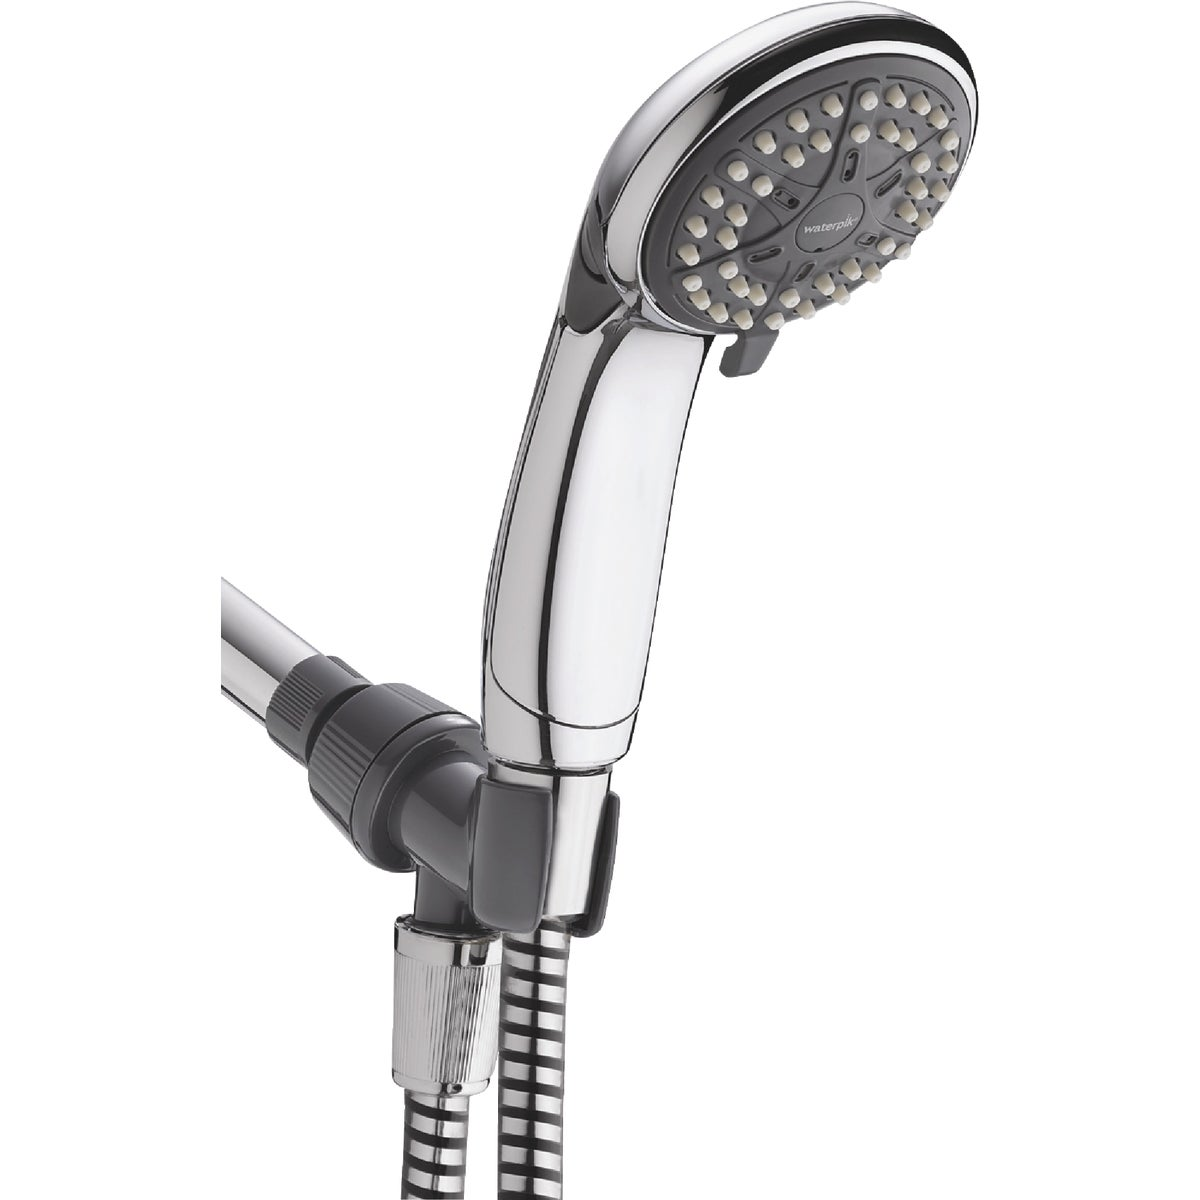 ECOFLOW HANDH SHOWERHEAD - VBE453 by Waterpik Inc